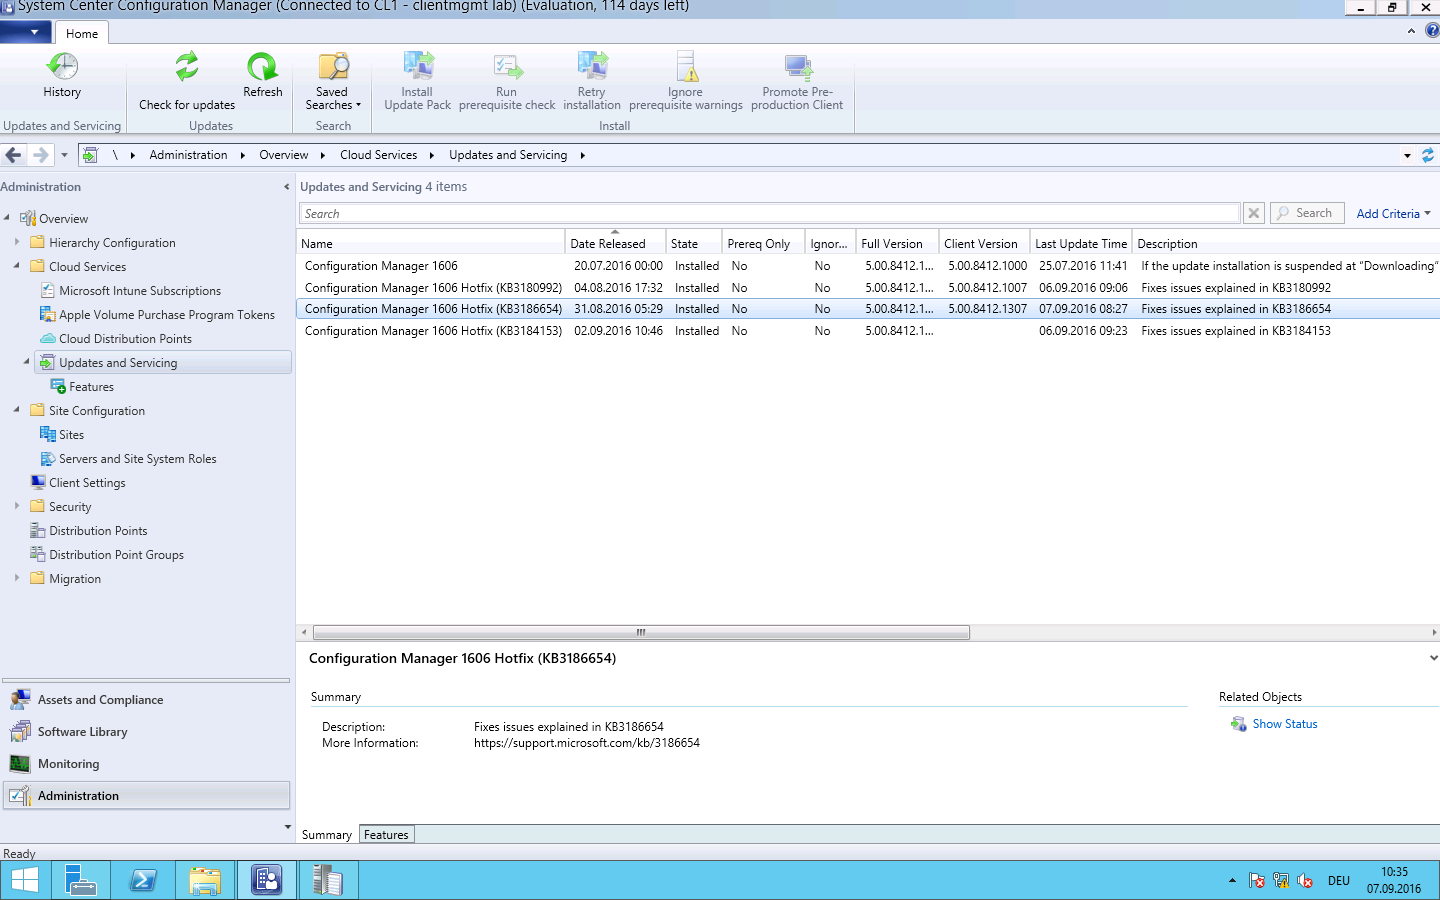 update-rollup-1-fuer-configuration-manager-1606-verfuegbar